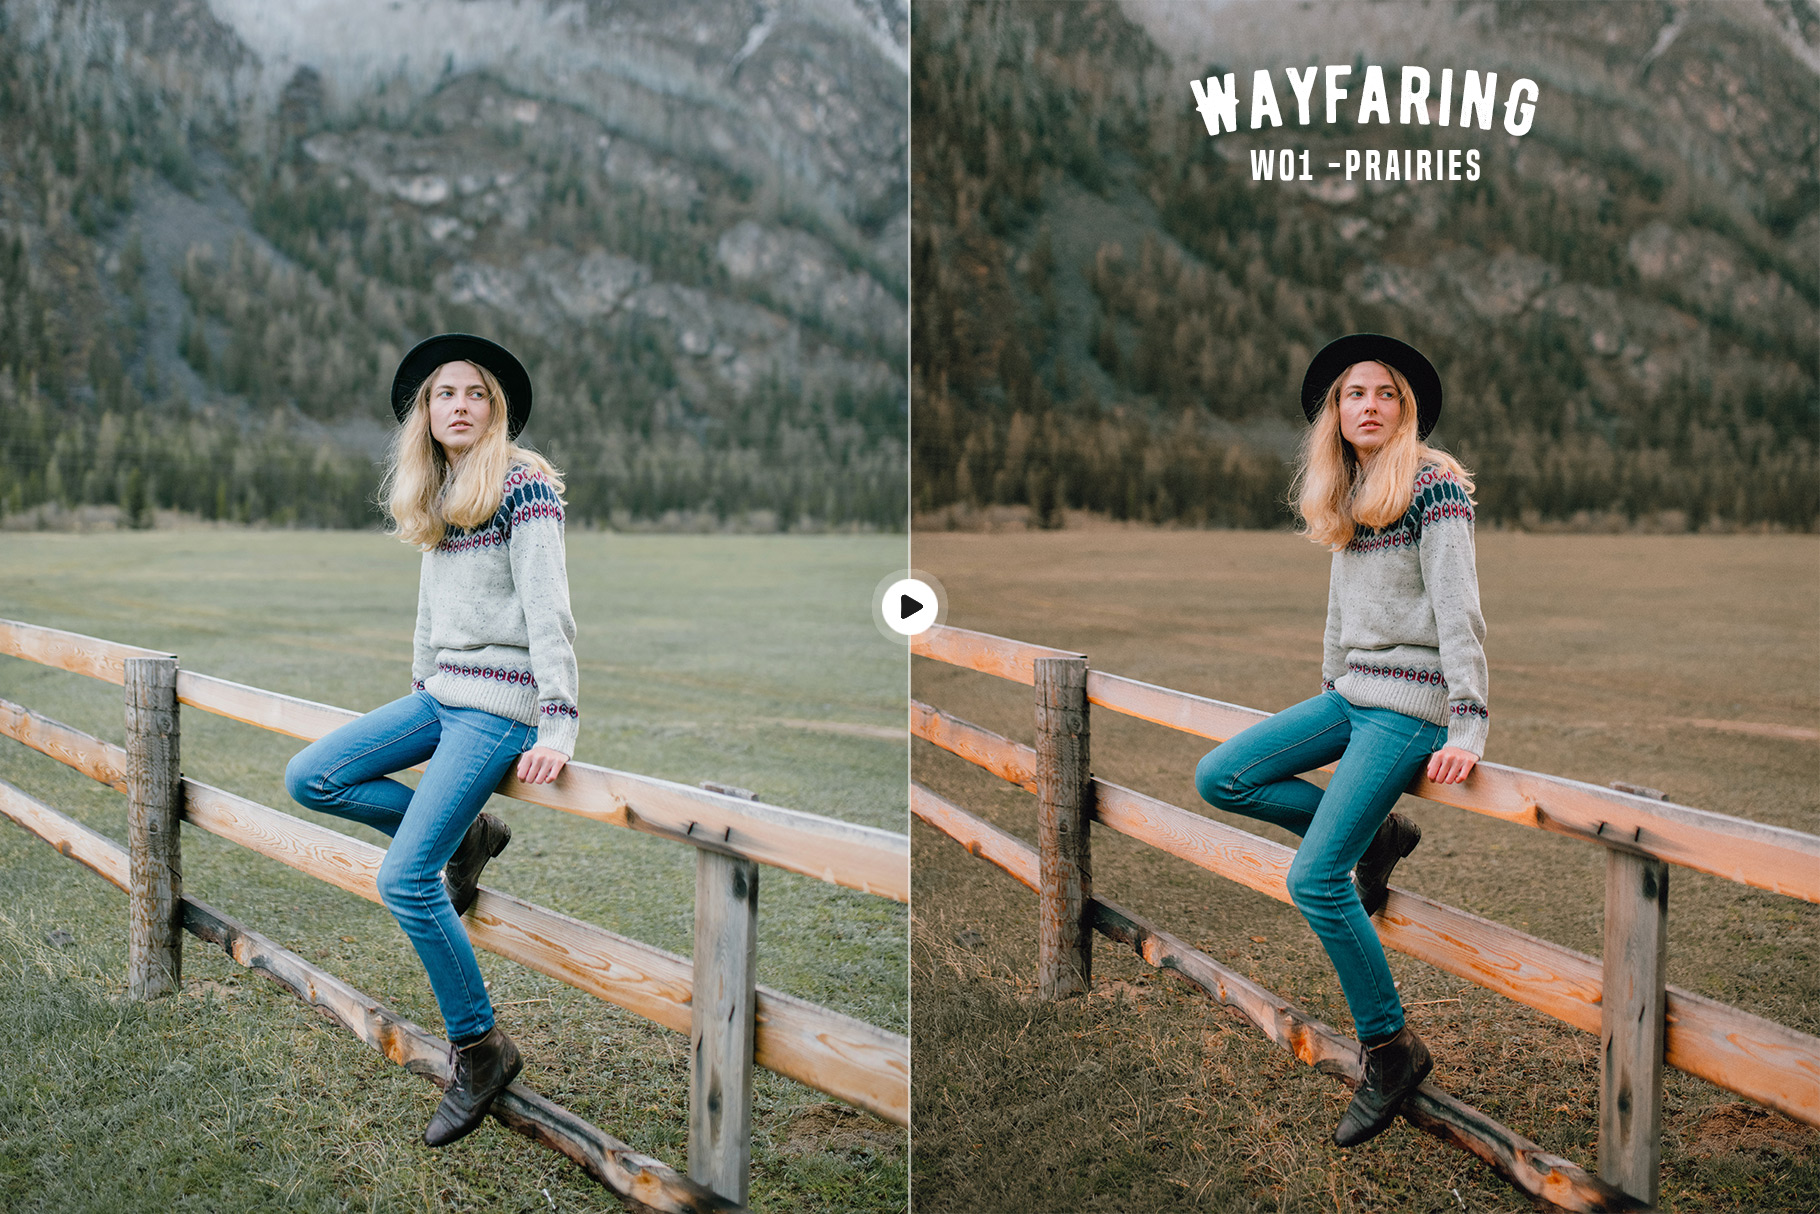 wayfaring_preview_11